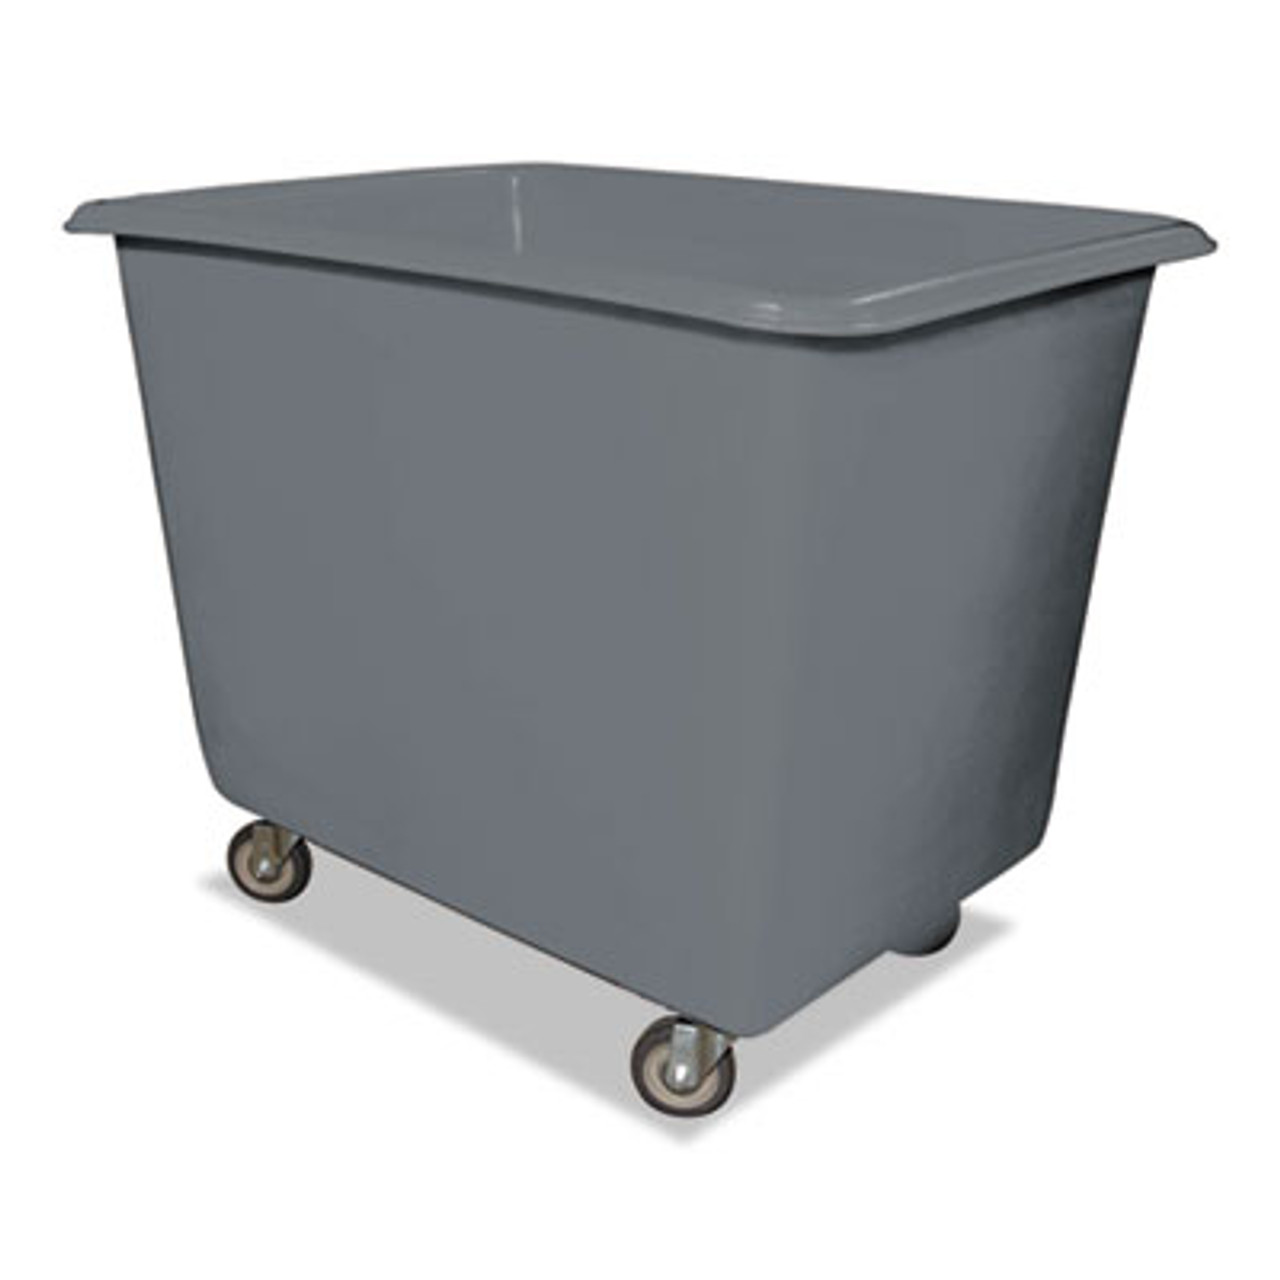 Royal 16 Bushel Poly Truck w/Galvanized Steel Base, 32 x 44 x 35 1/2, 800lbs Cap, Gray